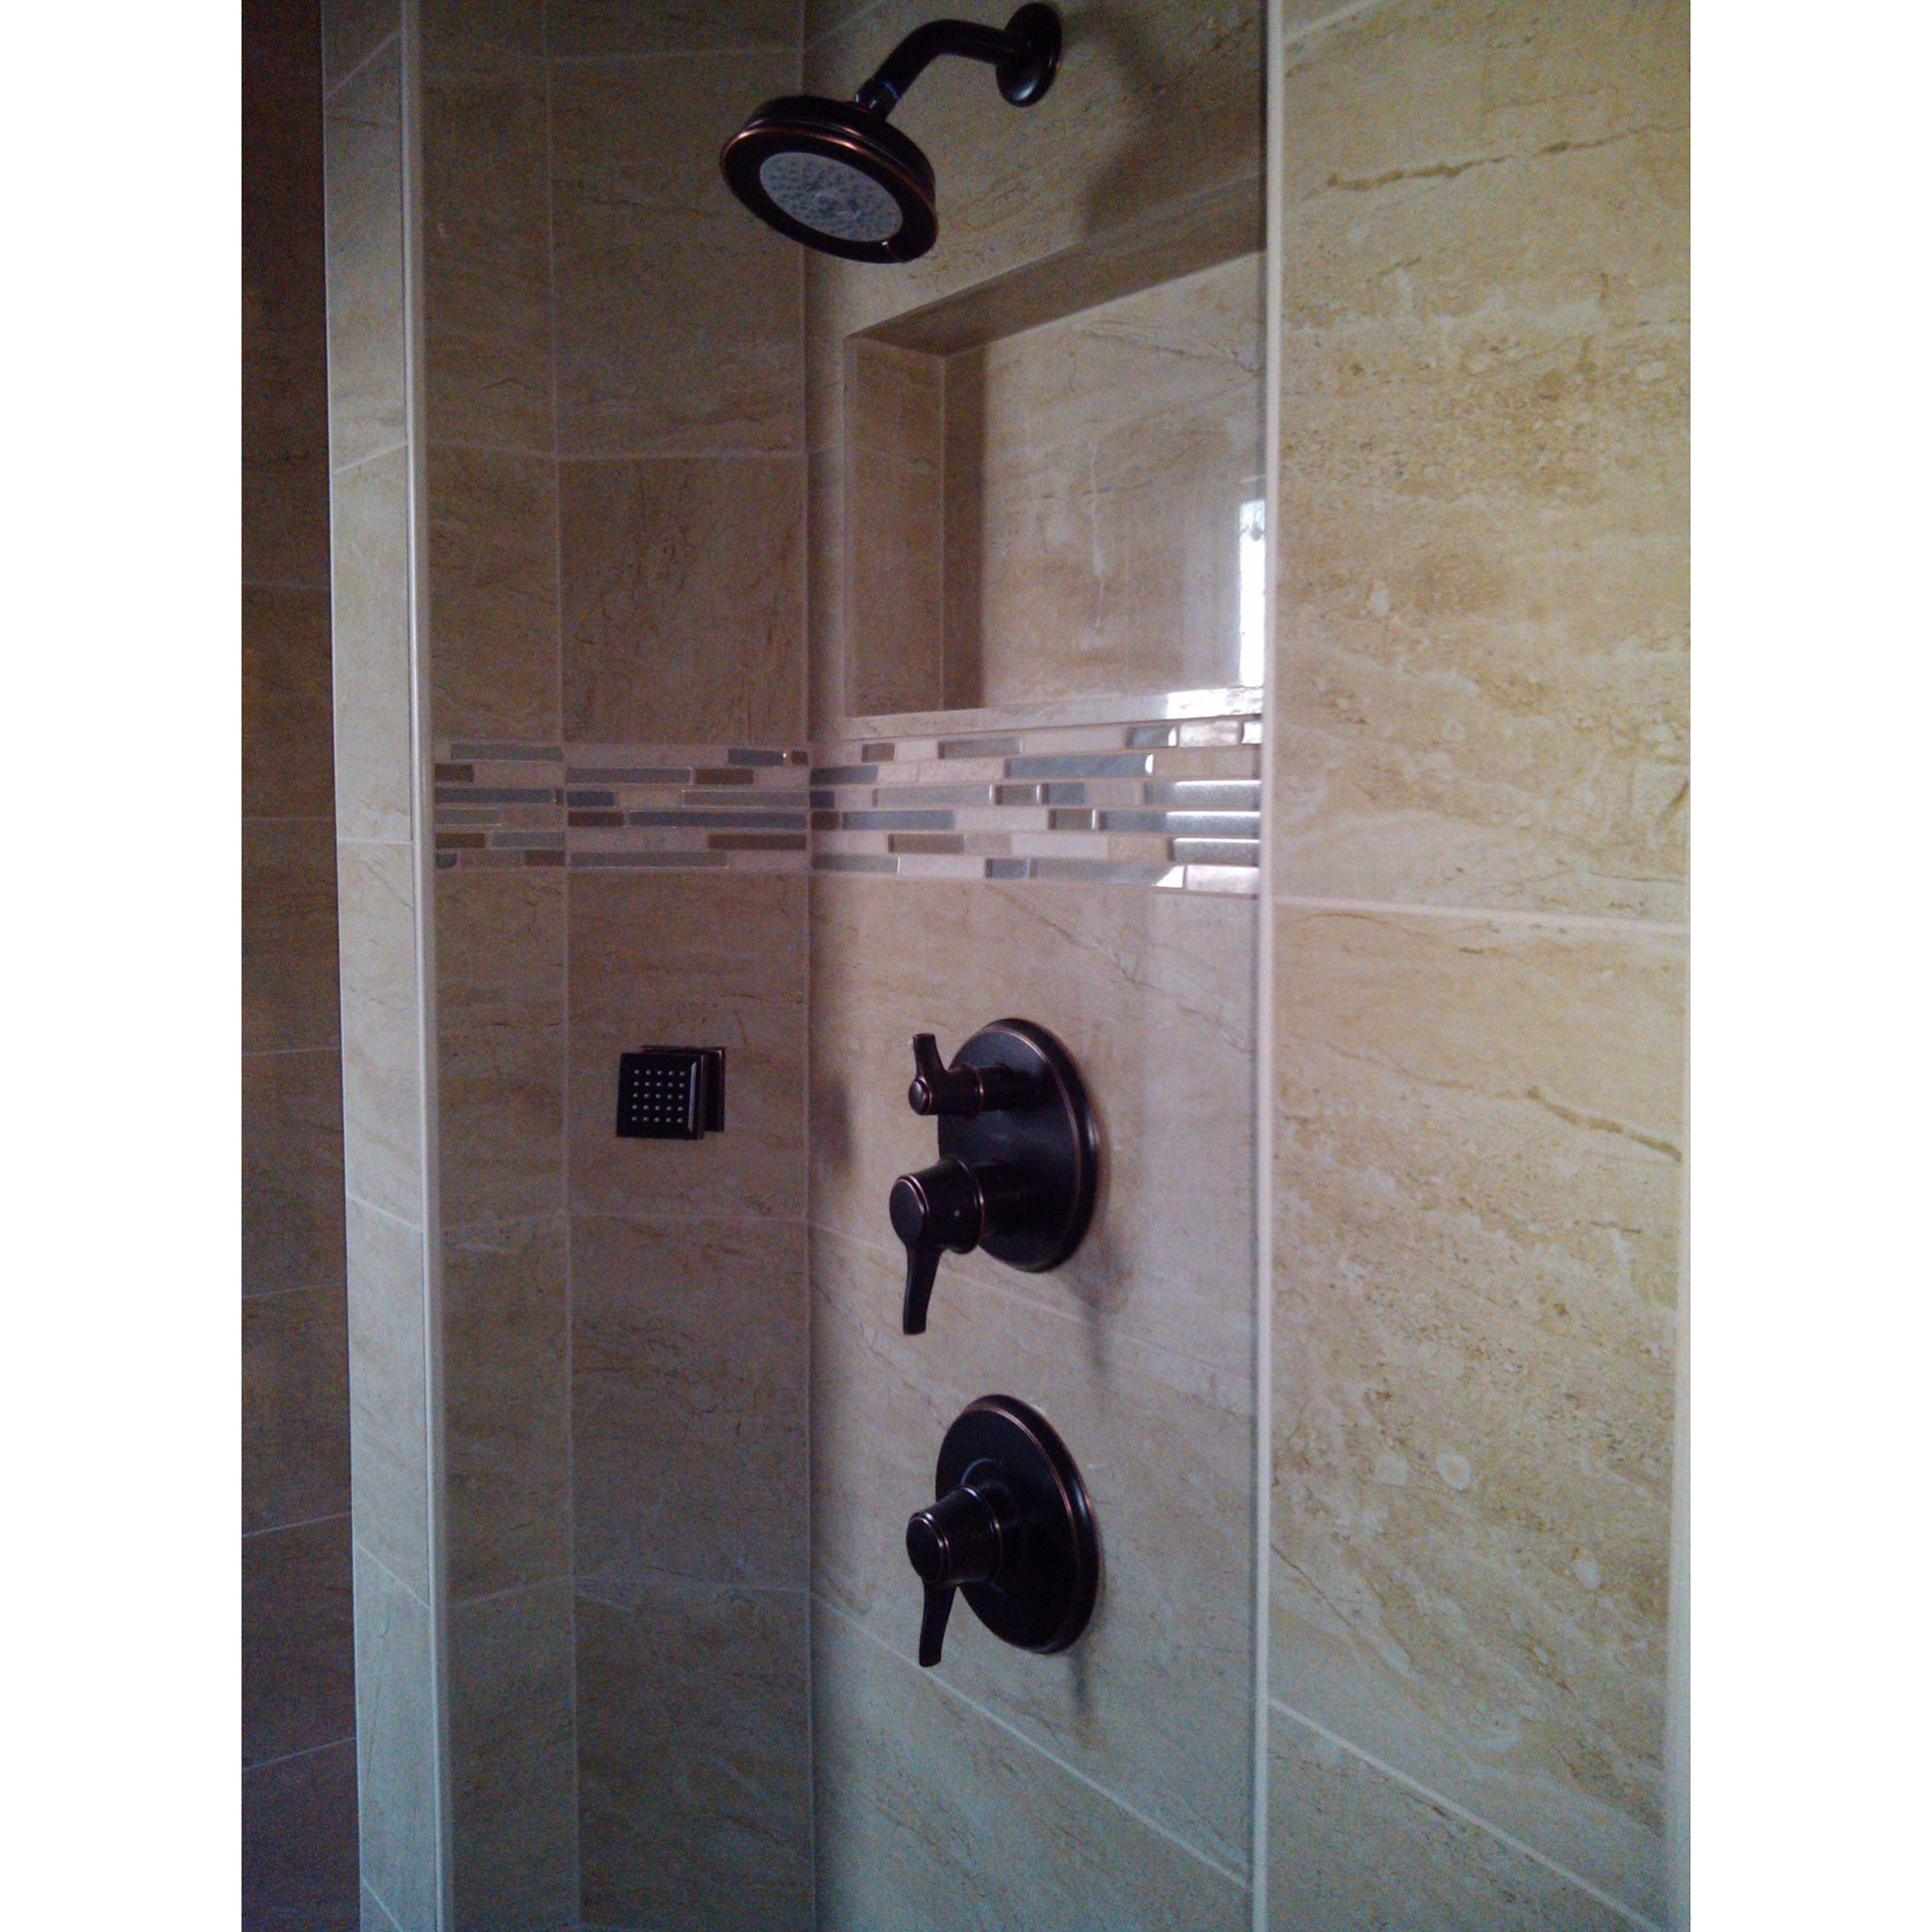 Remodeling Contractors in TX Houston 77055 Gabriel's Remodeling Service 1900 Spenwick  (281)817-4132